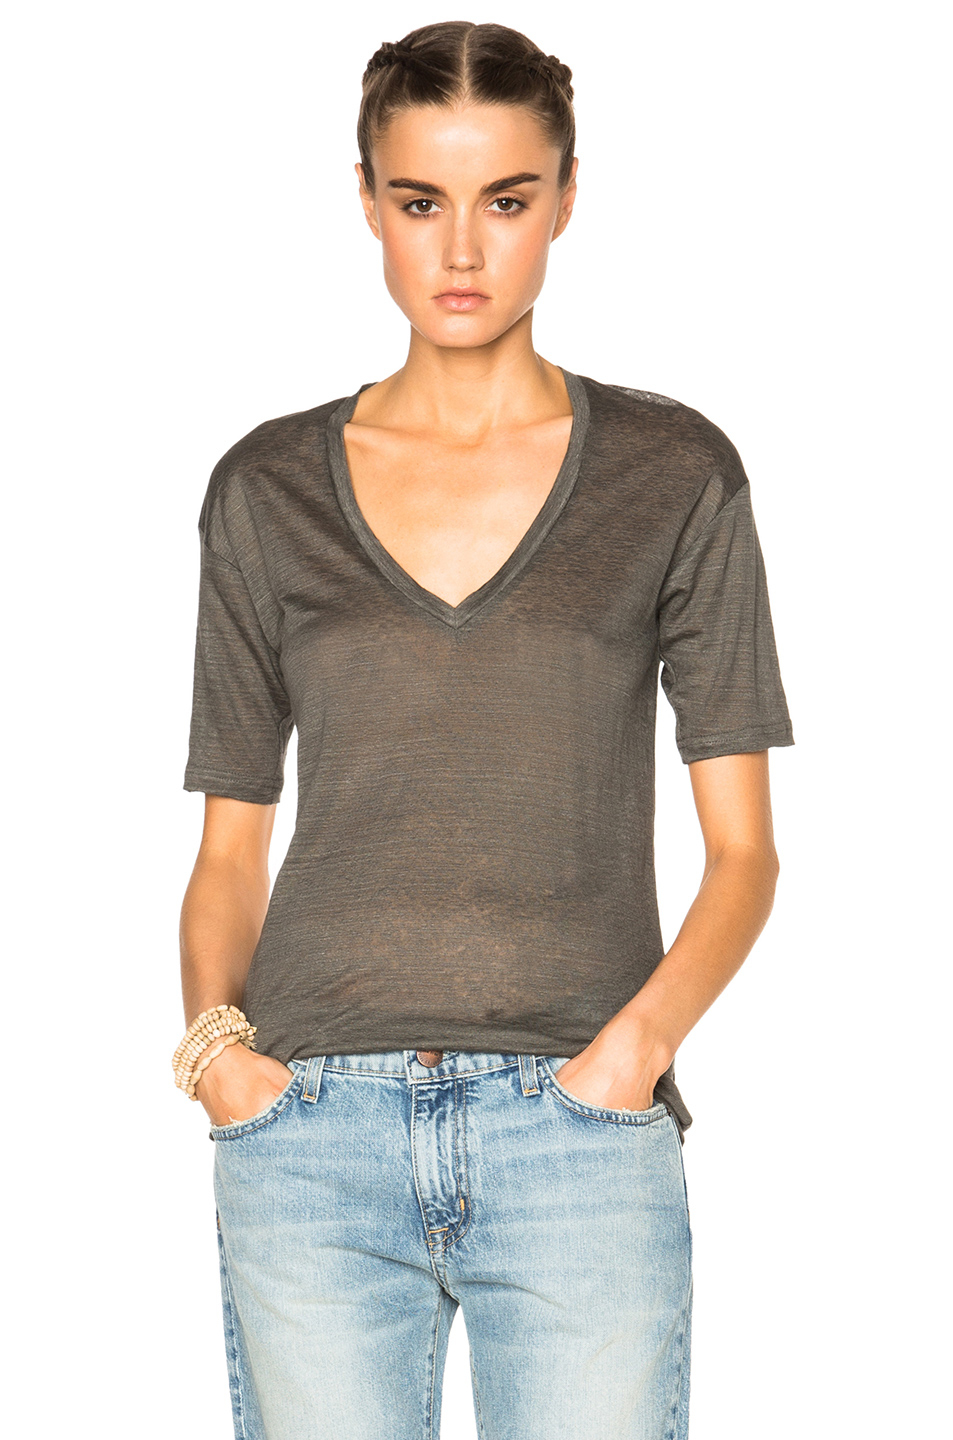 Isabel marant maree linen tee in gray lyst for Isabel marant t shirt sale